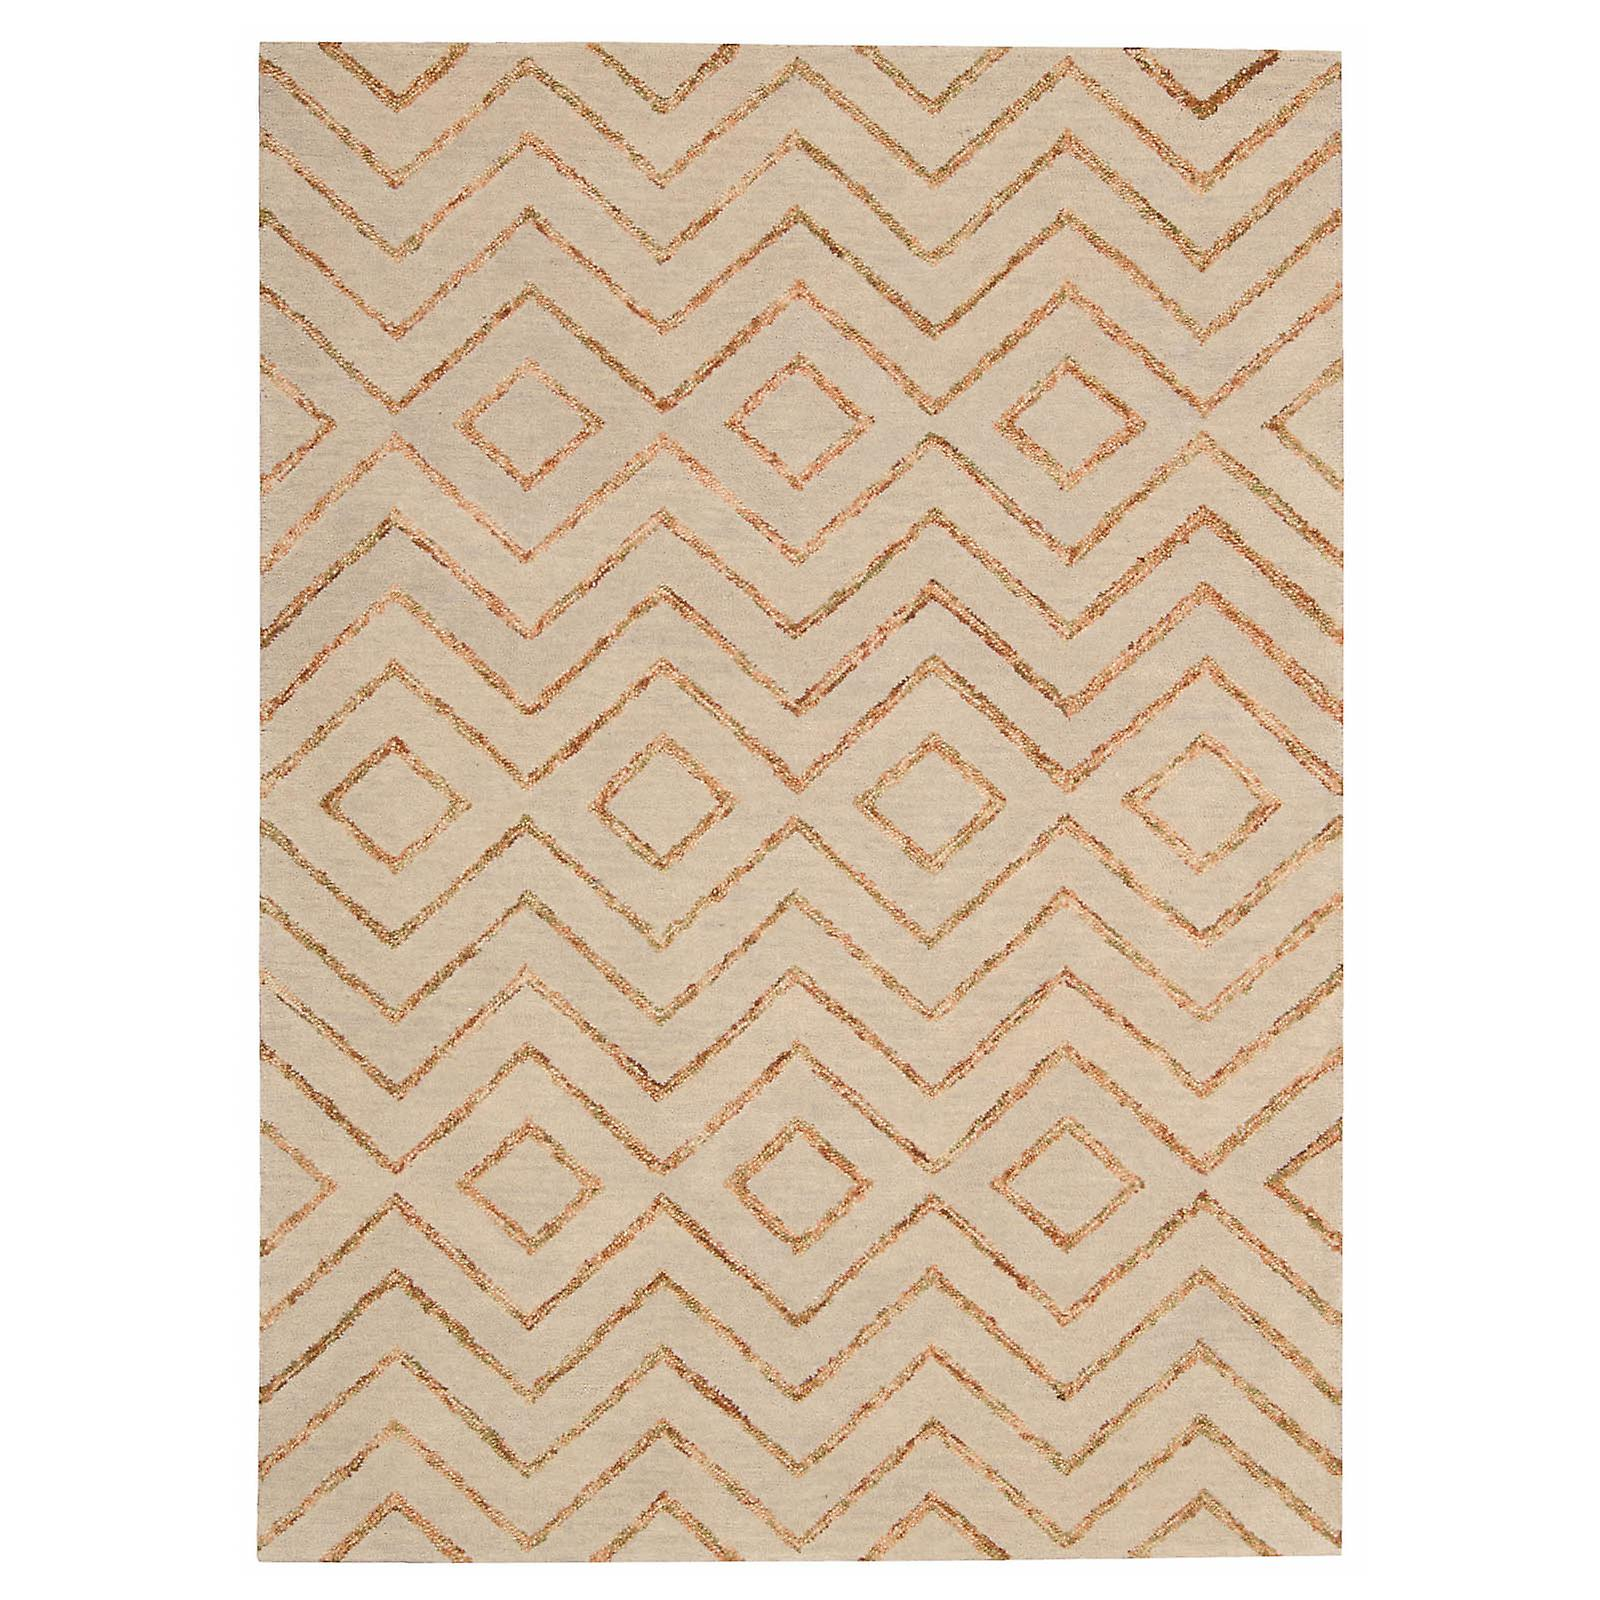 Intermix Rugs Int04 In Sand By Barclay Butera